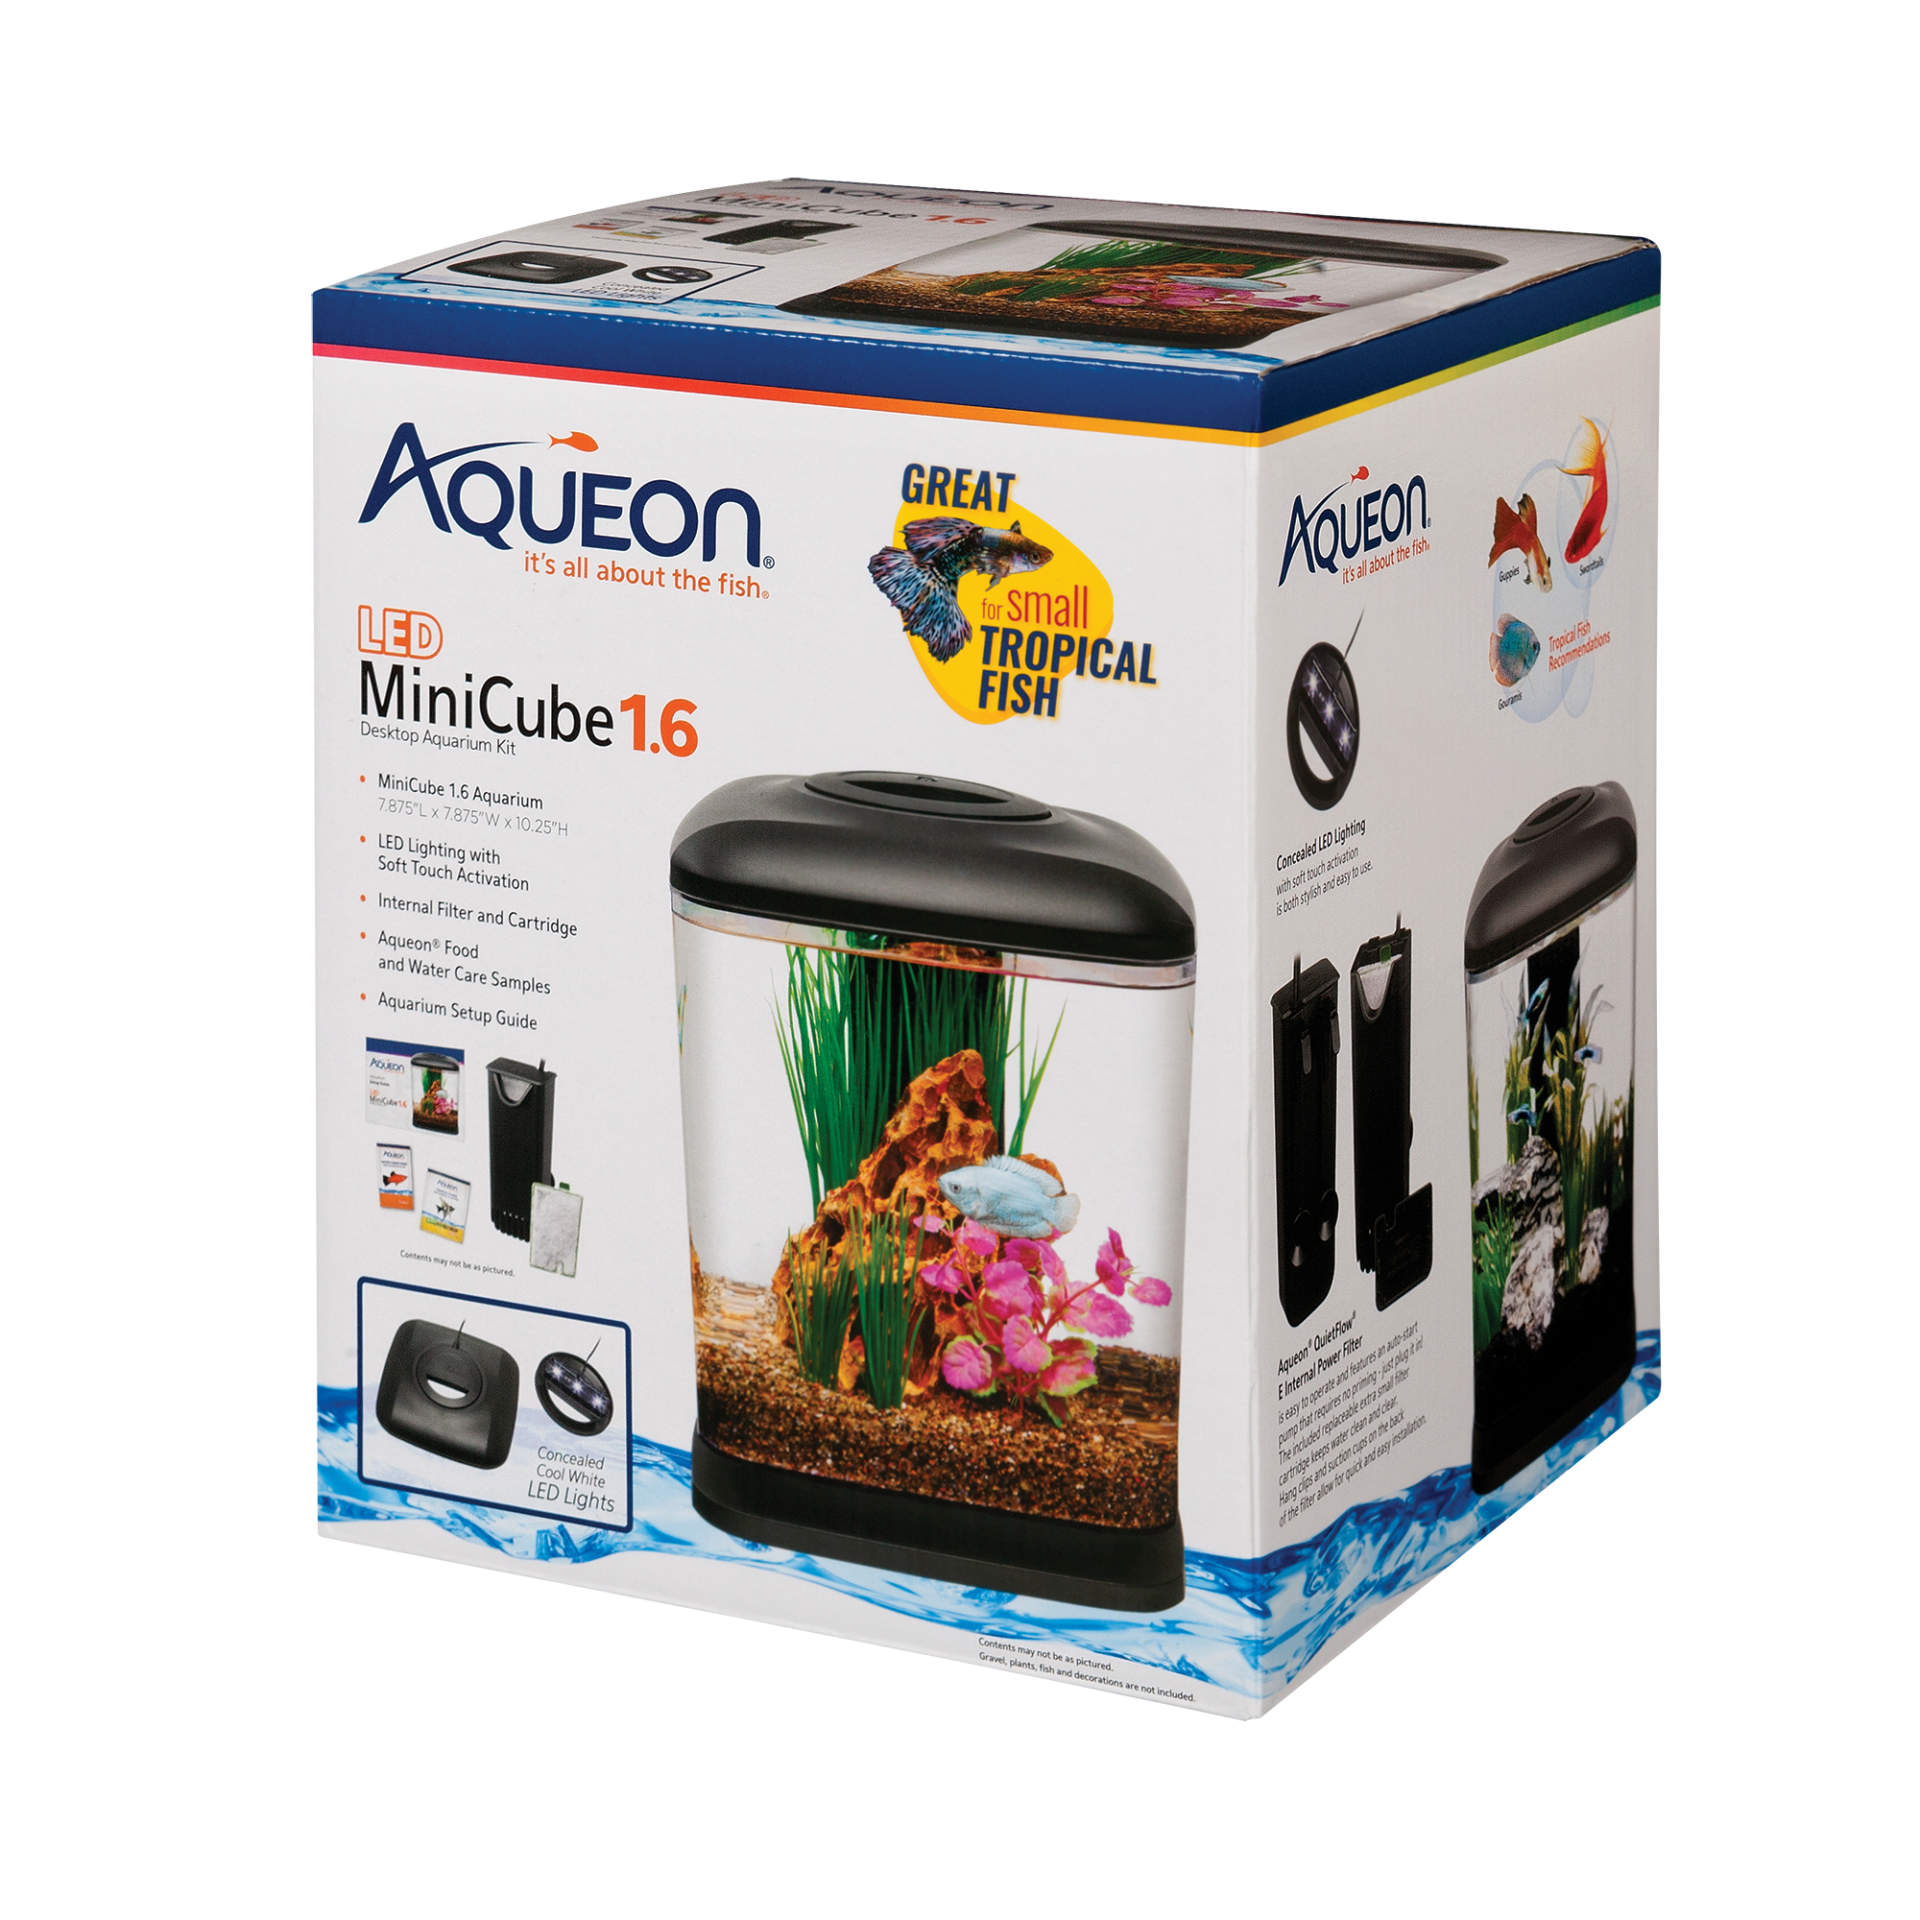 Aqueon MiniCube LED Desktop Aquarium Kit, 1.6-gallon